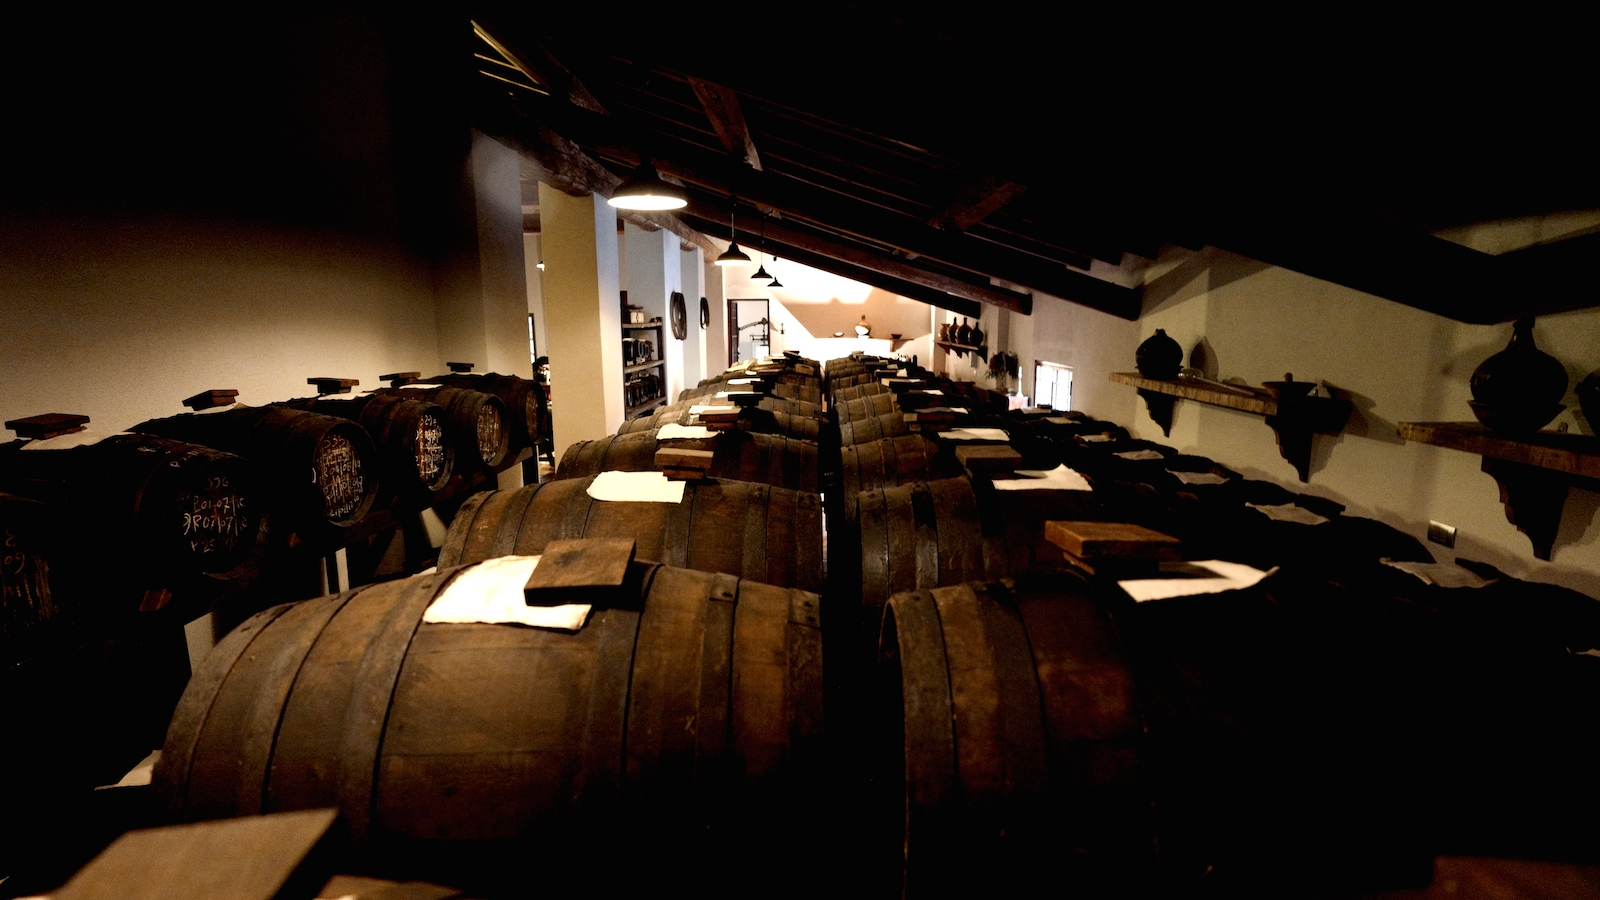 The 600 historic barrels of the 1700s and 1800s are still in operation.